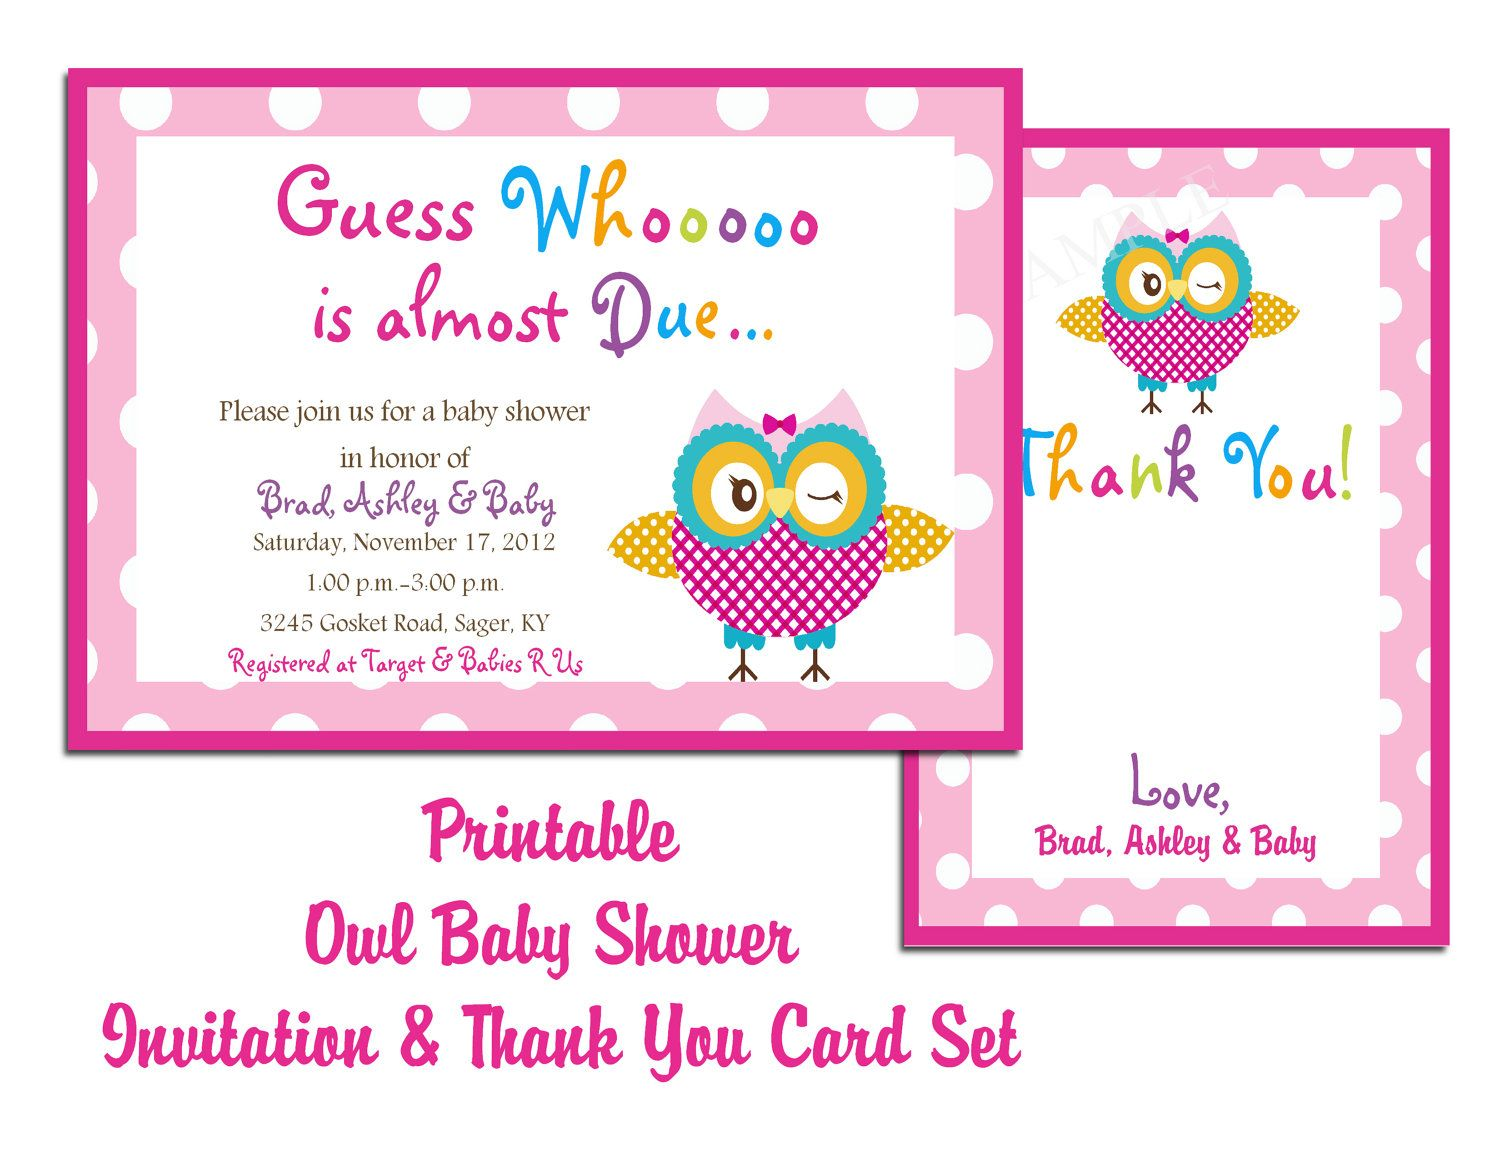 High Quality Free Printable Baby Shower Invitation Templates For A Girl U2013  InvitationLayout.